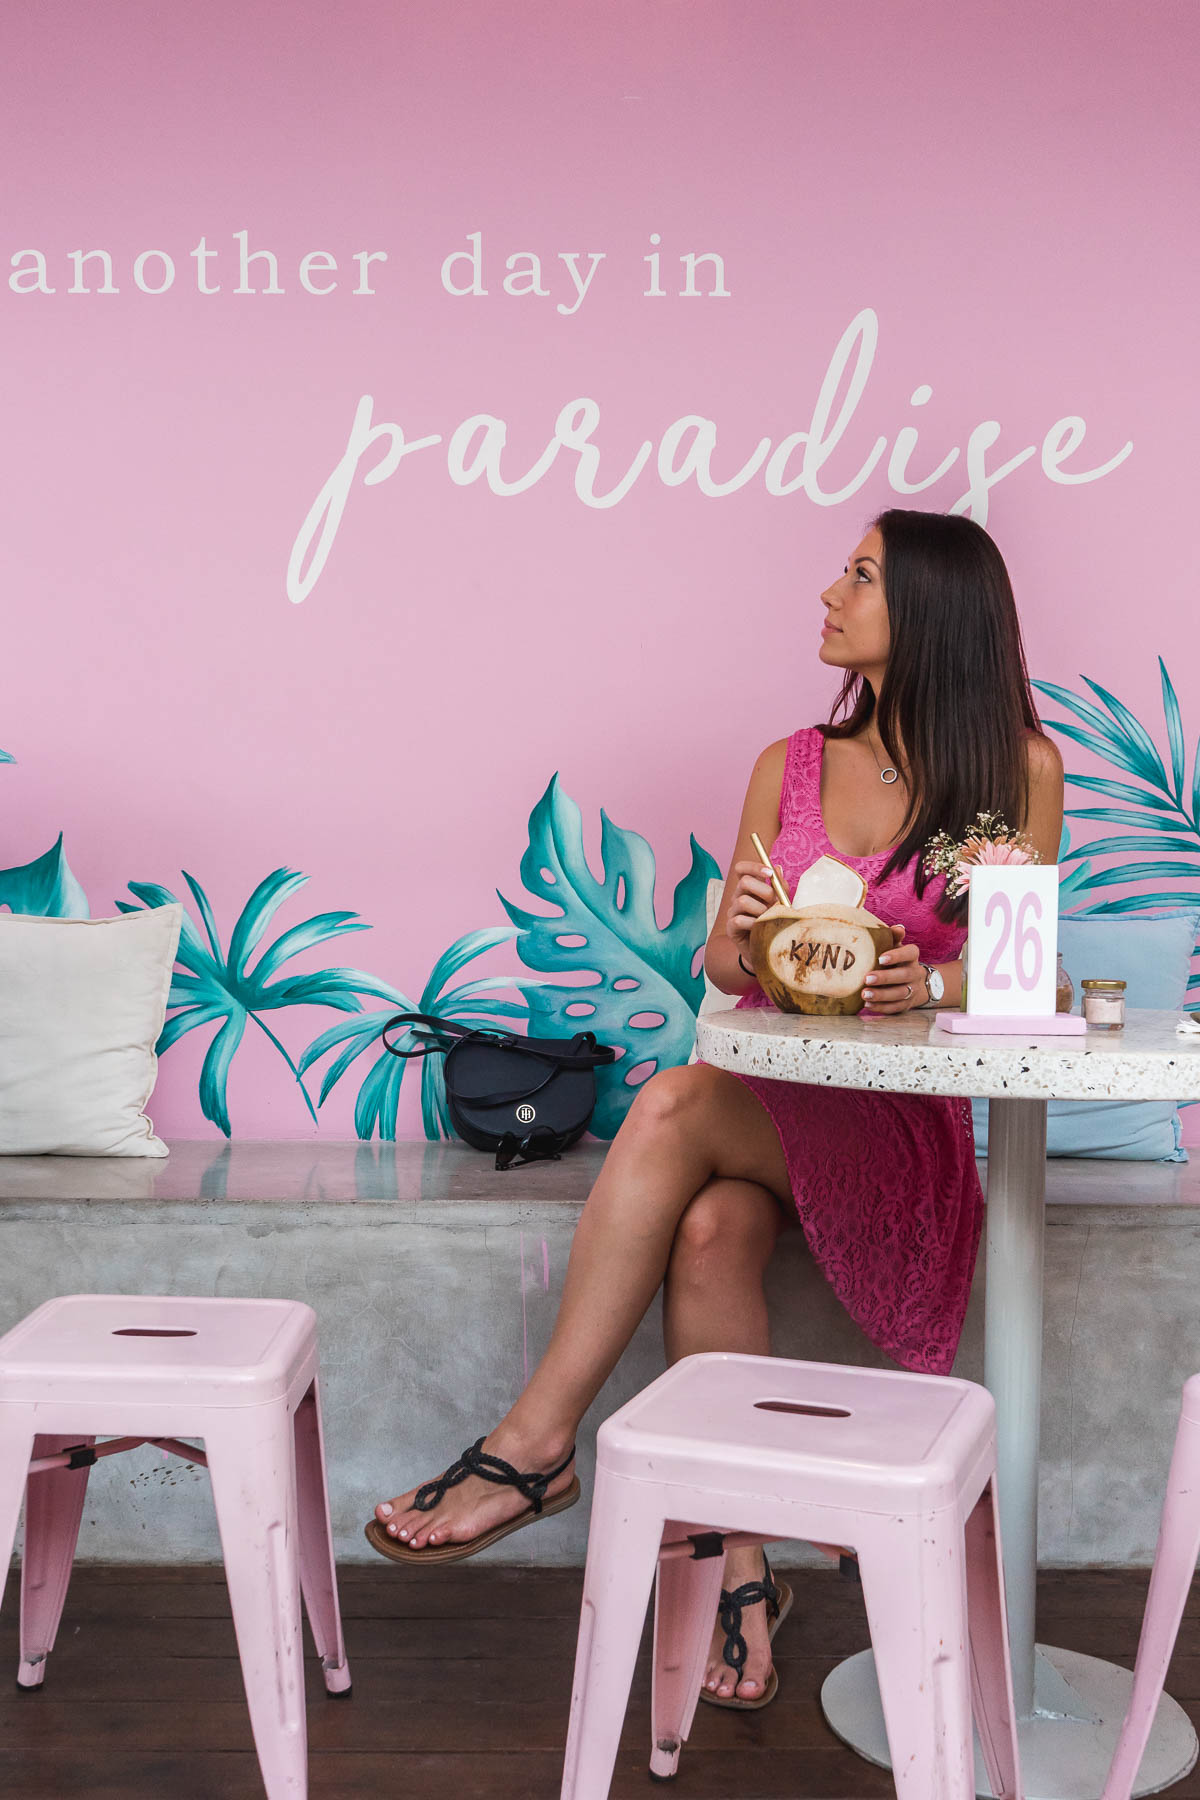 Girl in a pink dress standing in front of a pretty pink wall at Kynd Community in Seminyak, Bali